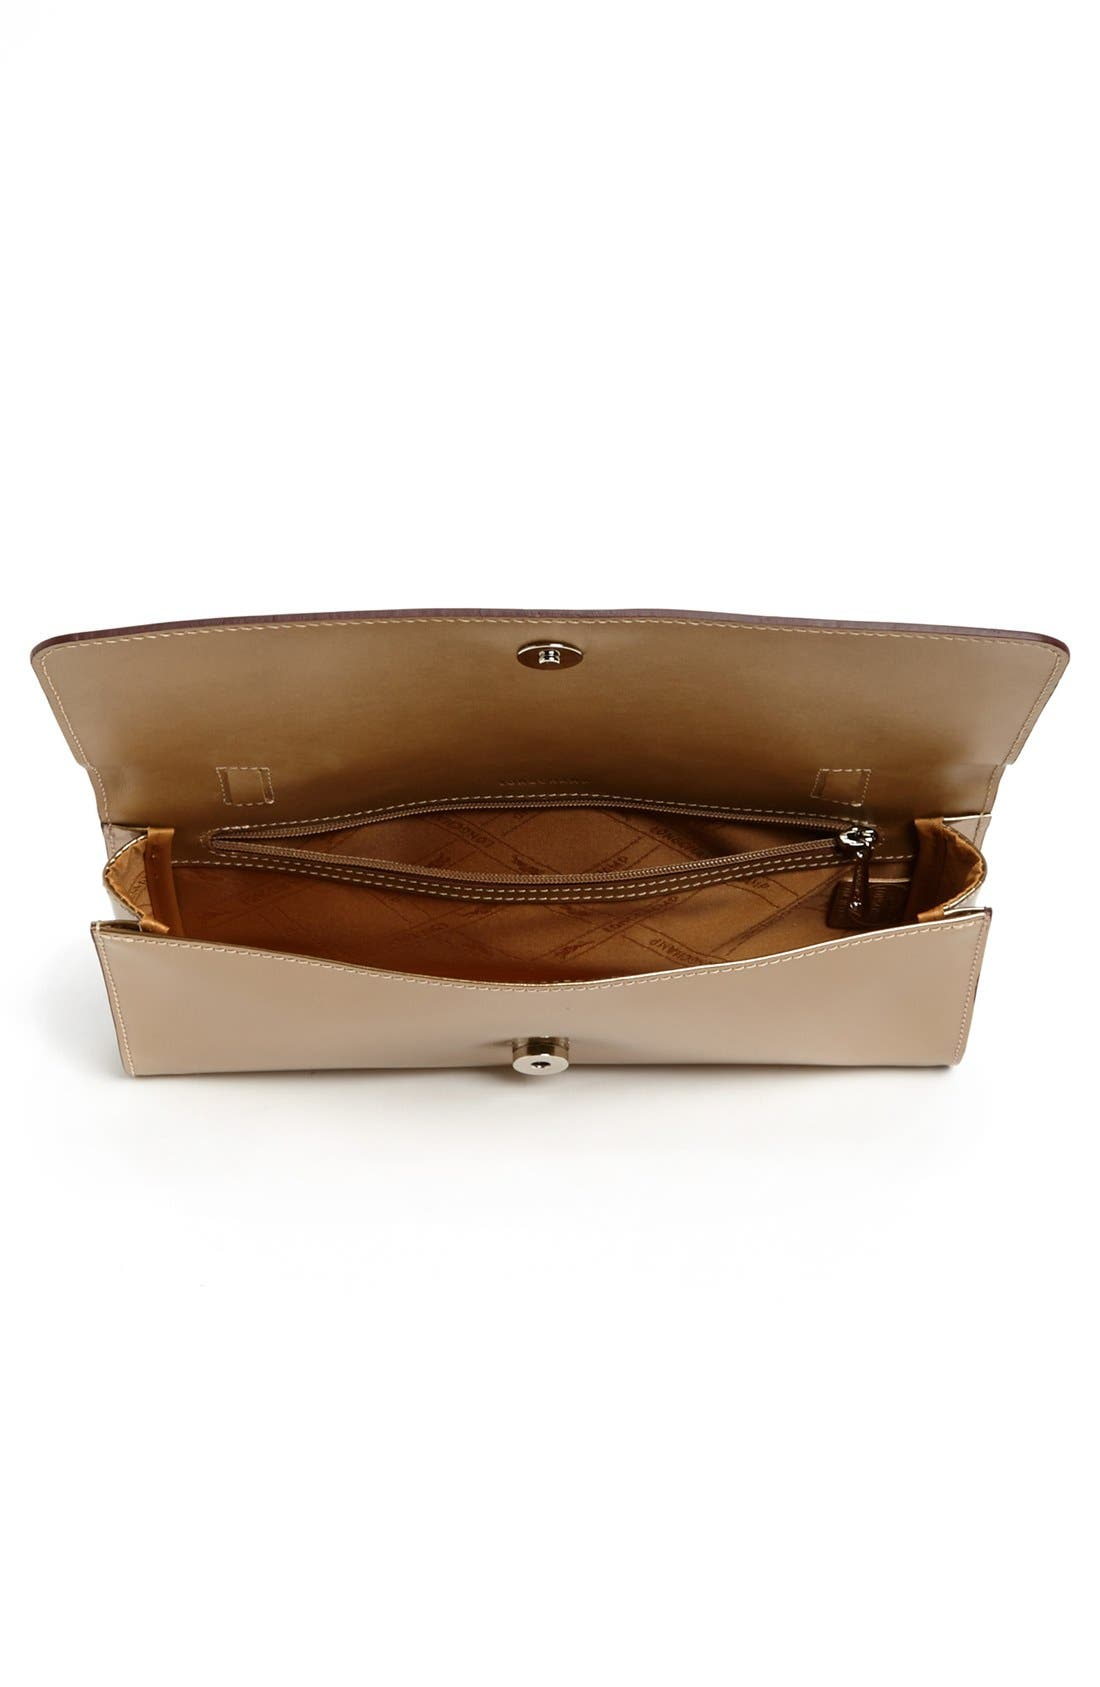 Alternate Image 3  - Longchamp 'Roseau Box' Clutch